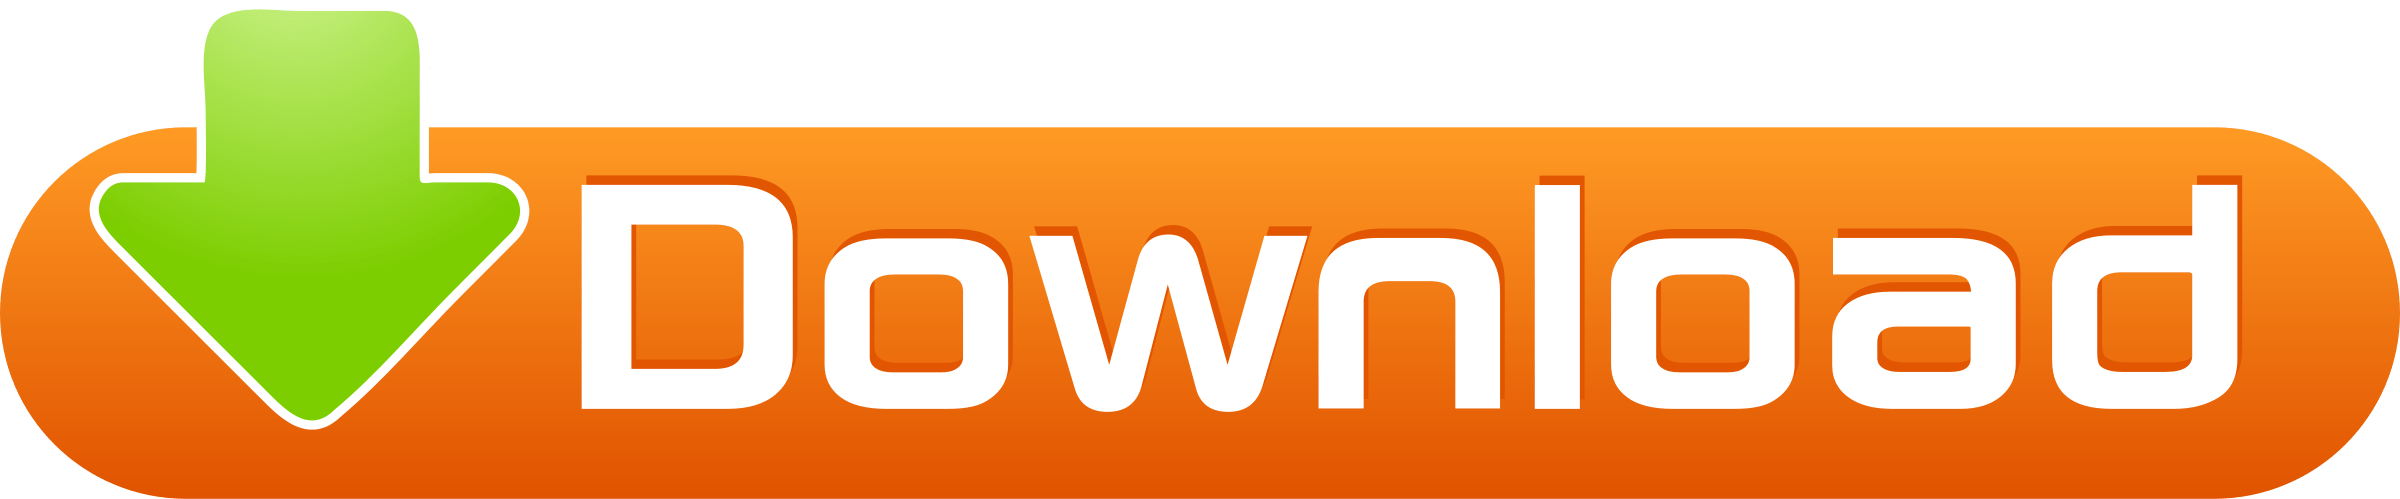 Download buttons png. Orange button with green